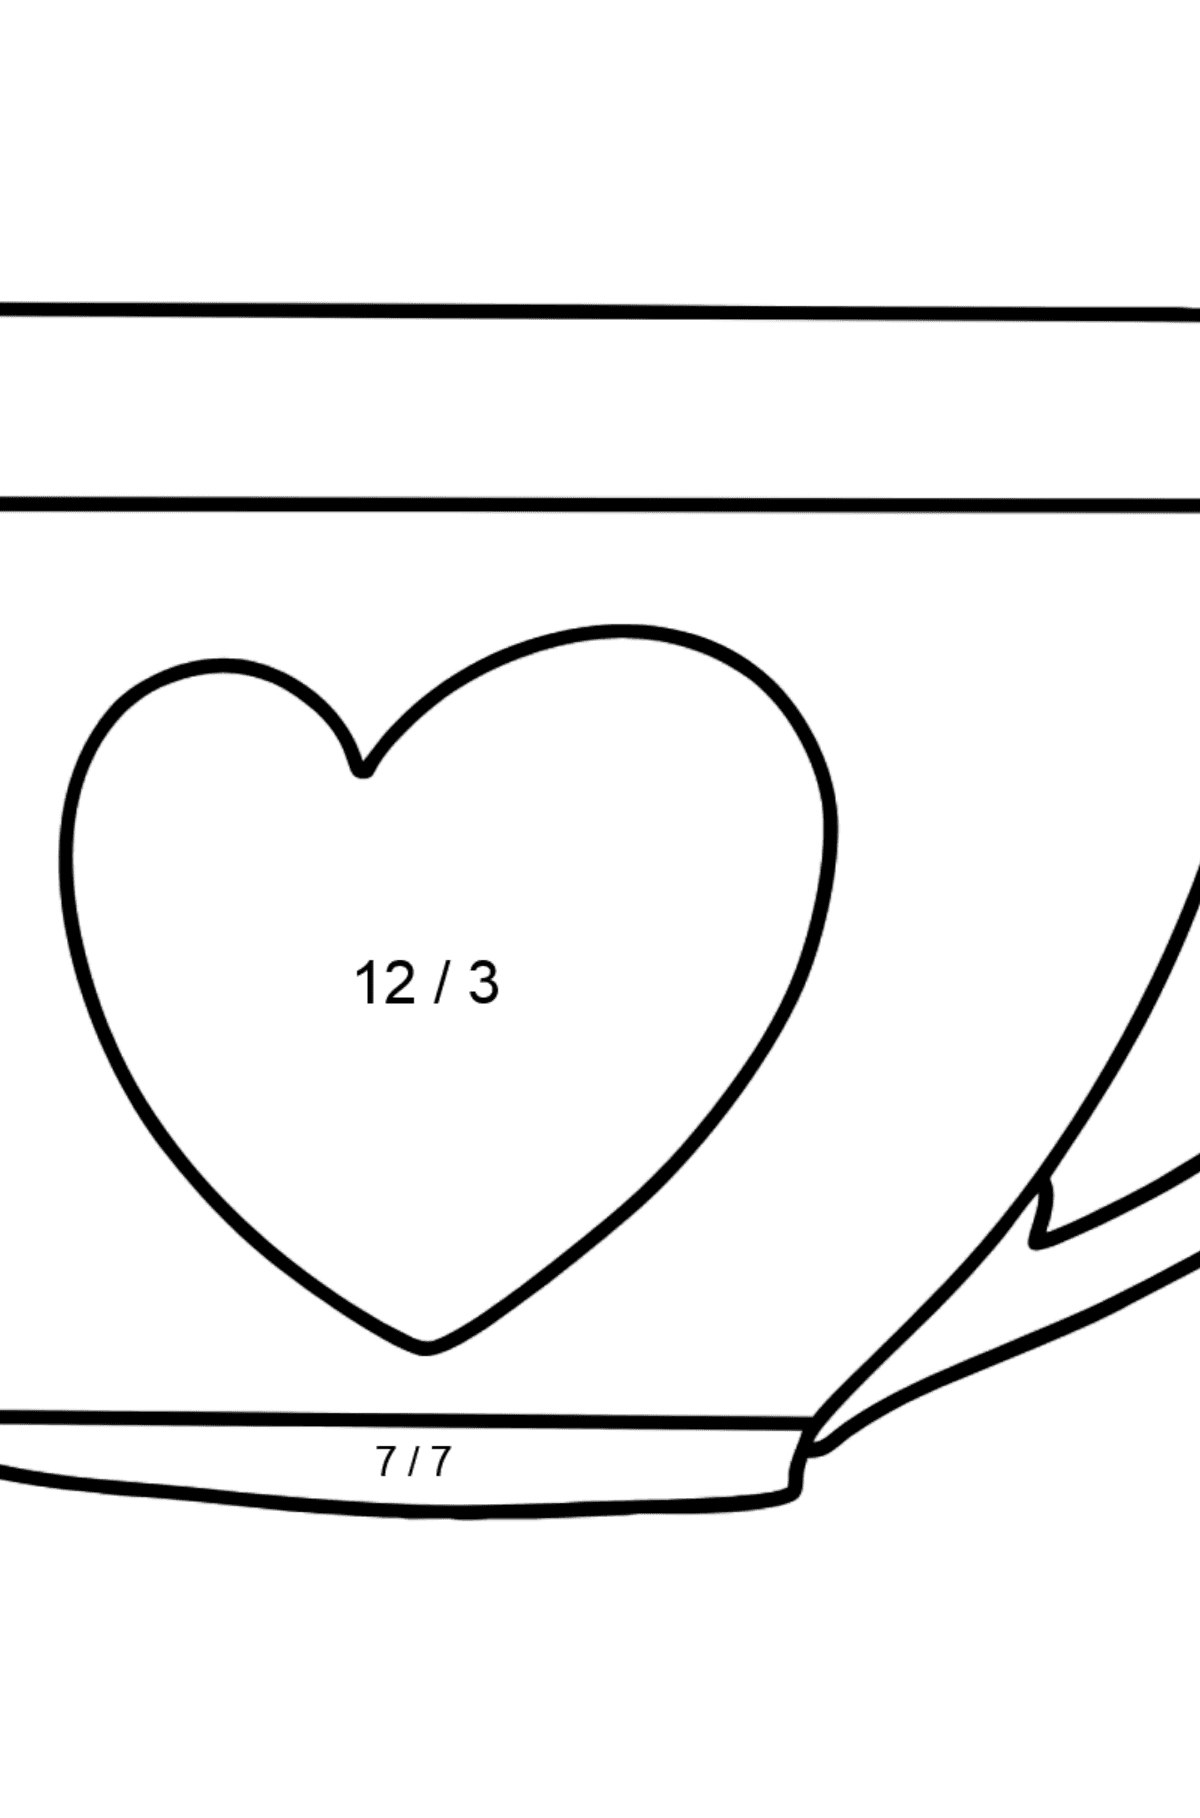 Cup coloring page - Math Coloring - Division for Kids